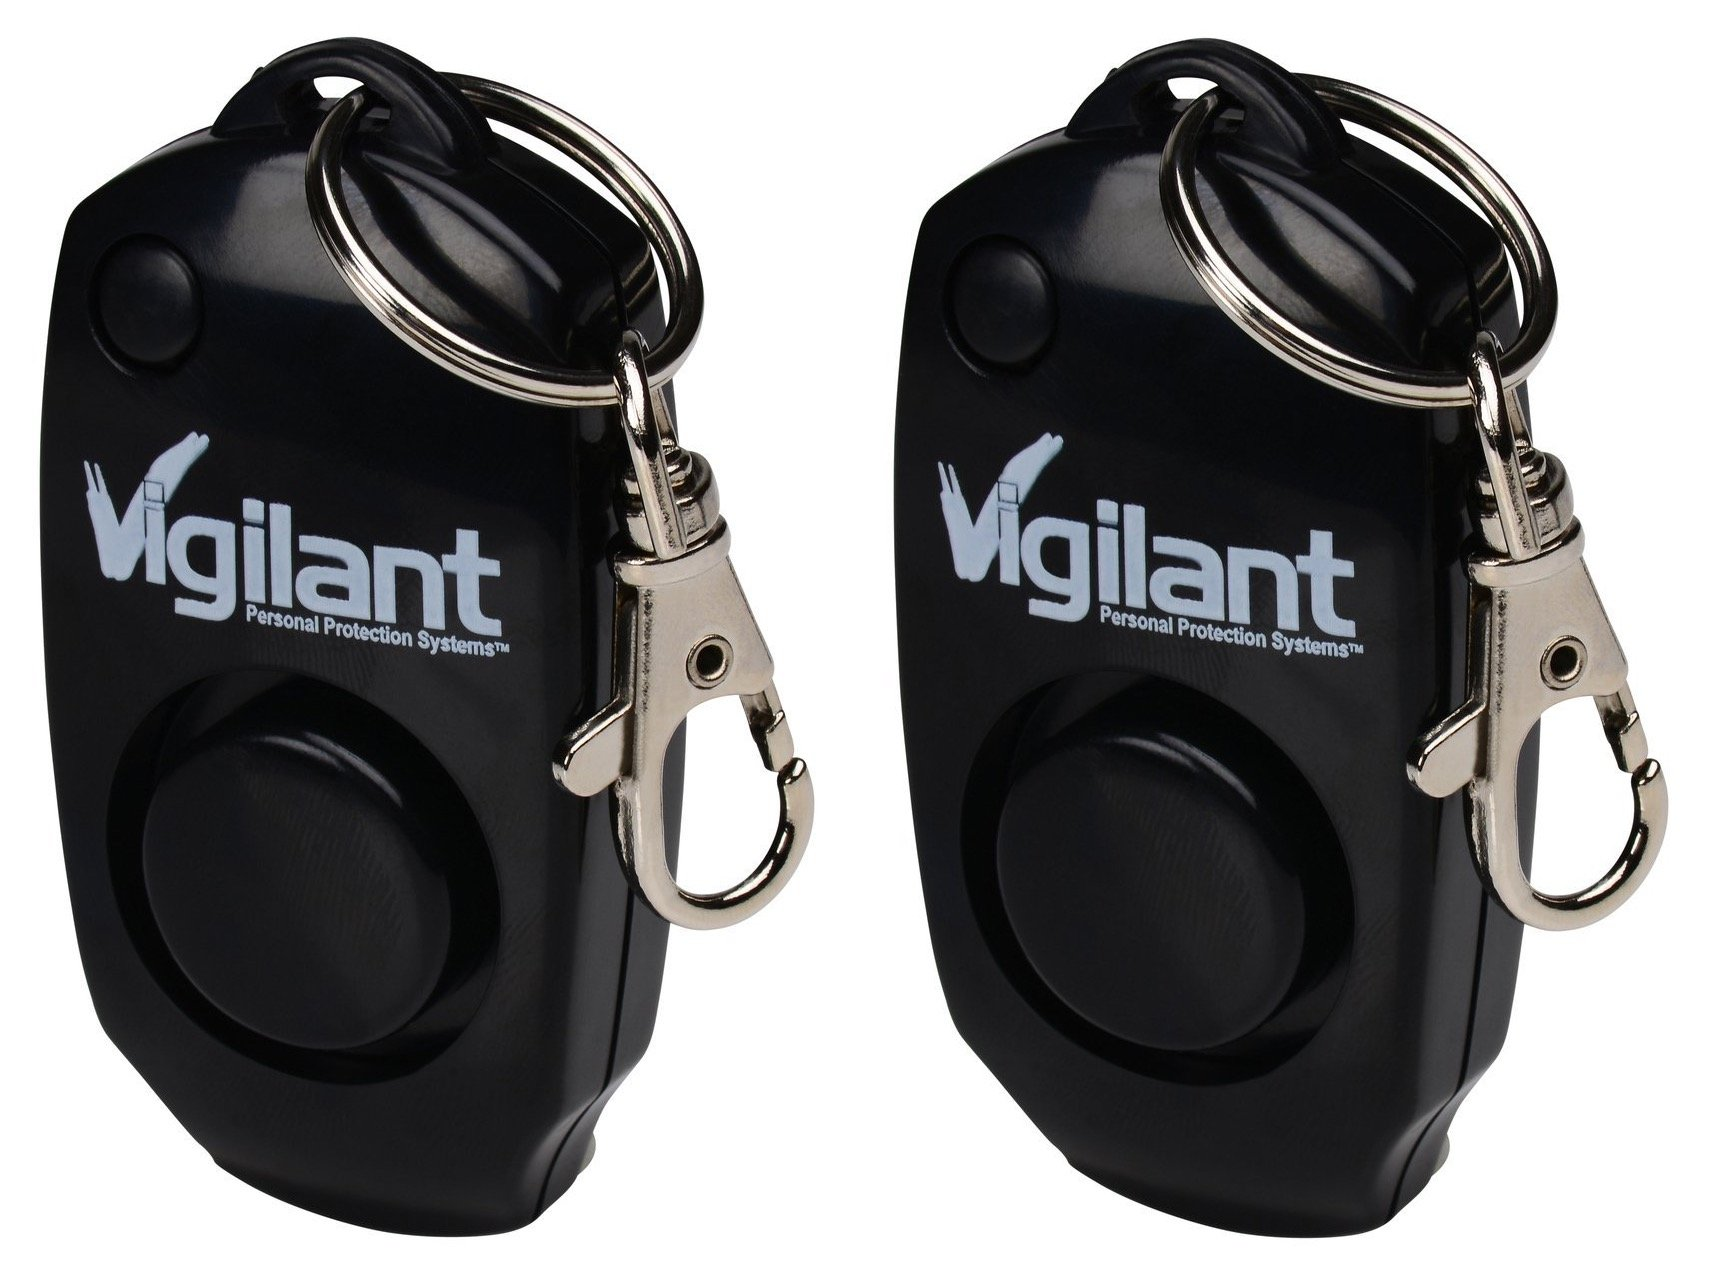 2-Pack Vigilant 130dB Personal Alarm - Backup Whistle - Button Activated with Hidden Off Button - Bag Purse Key Chain Keyring Clip - Batteries Included - for Men Women Kids Students (PPS-23BLK 2 Pack)